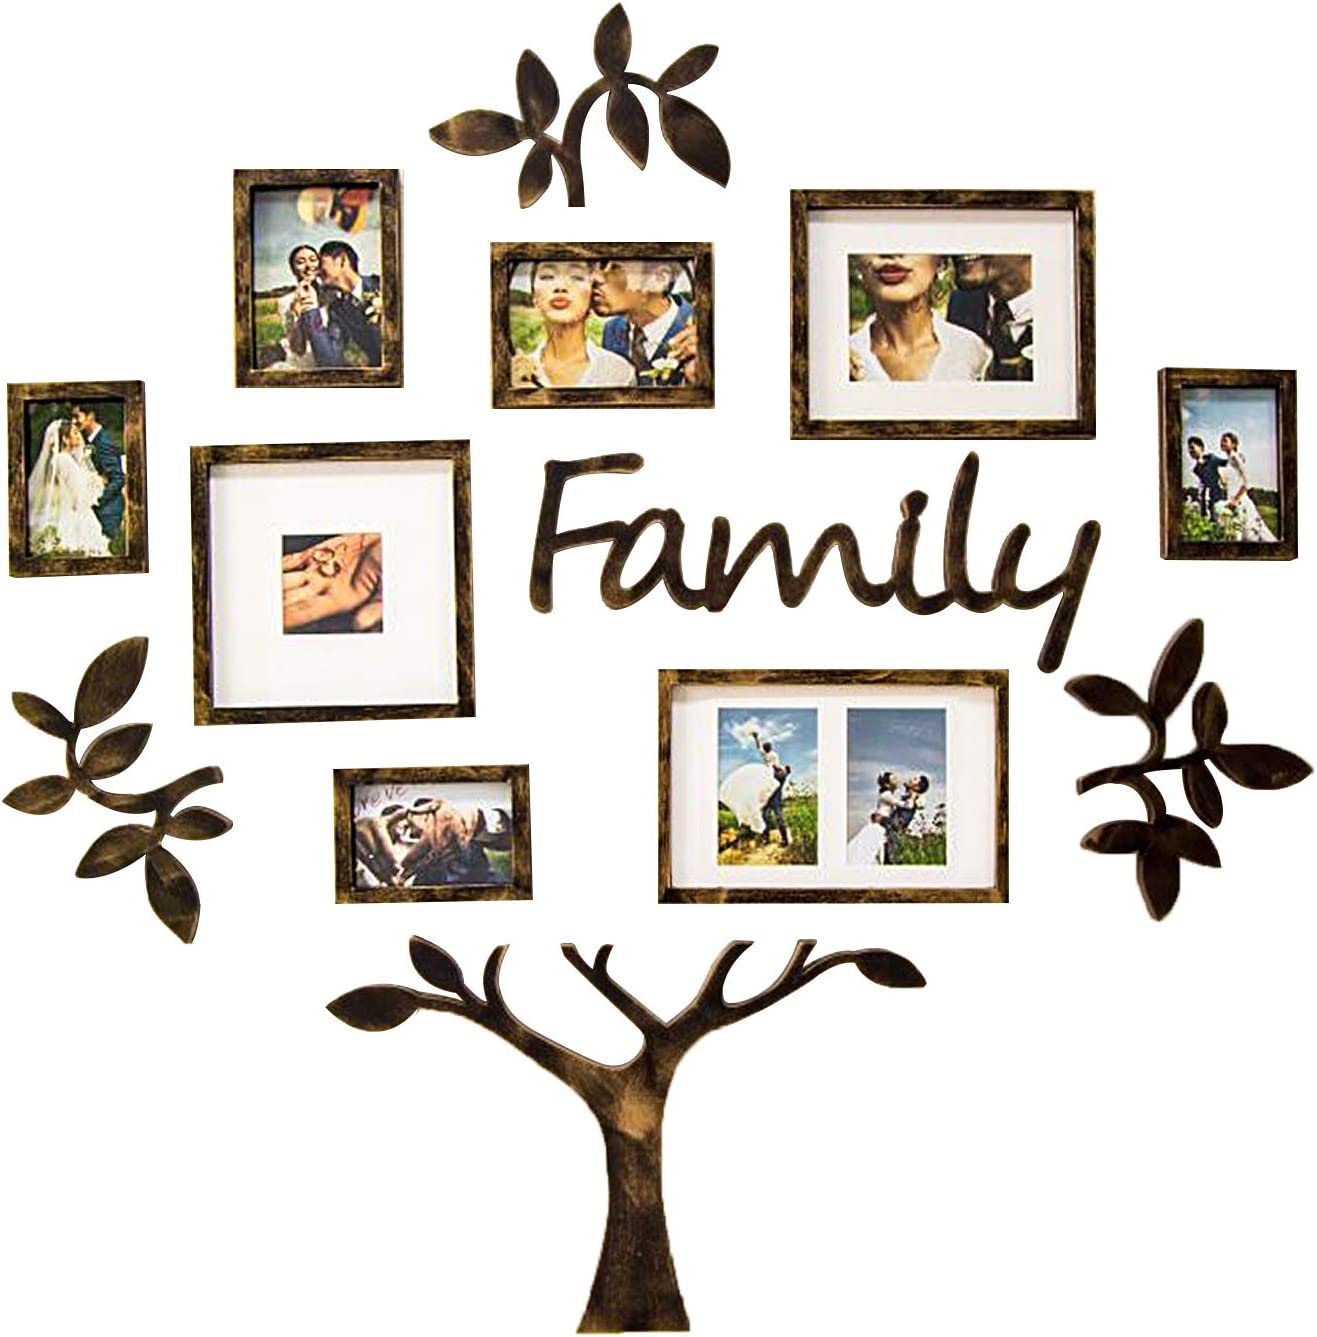 Jerry & Maggie - Photo Frame | Plaque College Frame - Wall Decoration Combination - Brown PVC Picture Frame Selfie Gallery Collage with Hanging Template & Wall Mounting Design | Family Tree